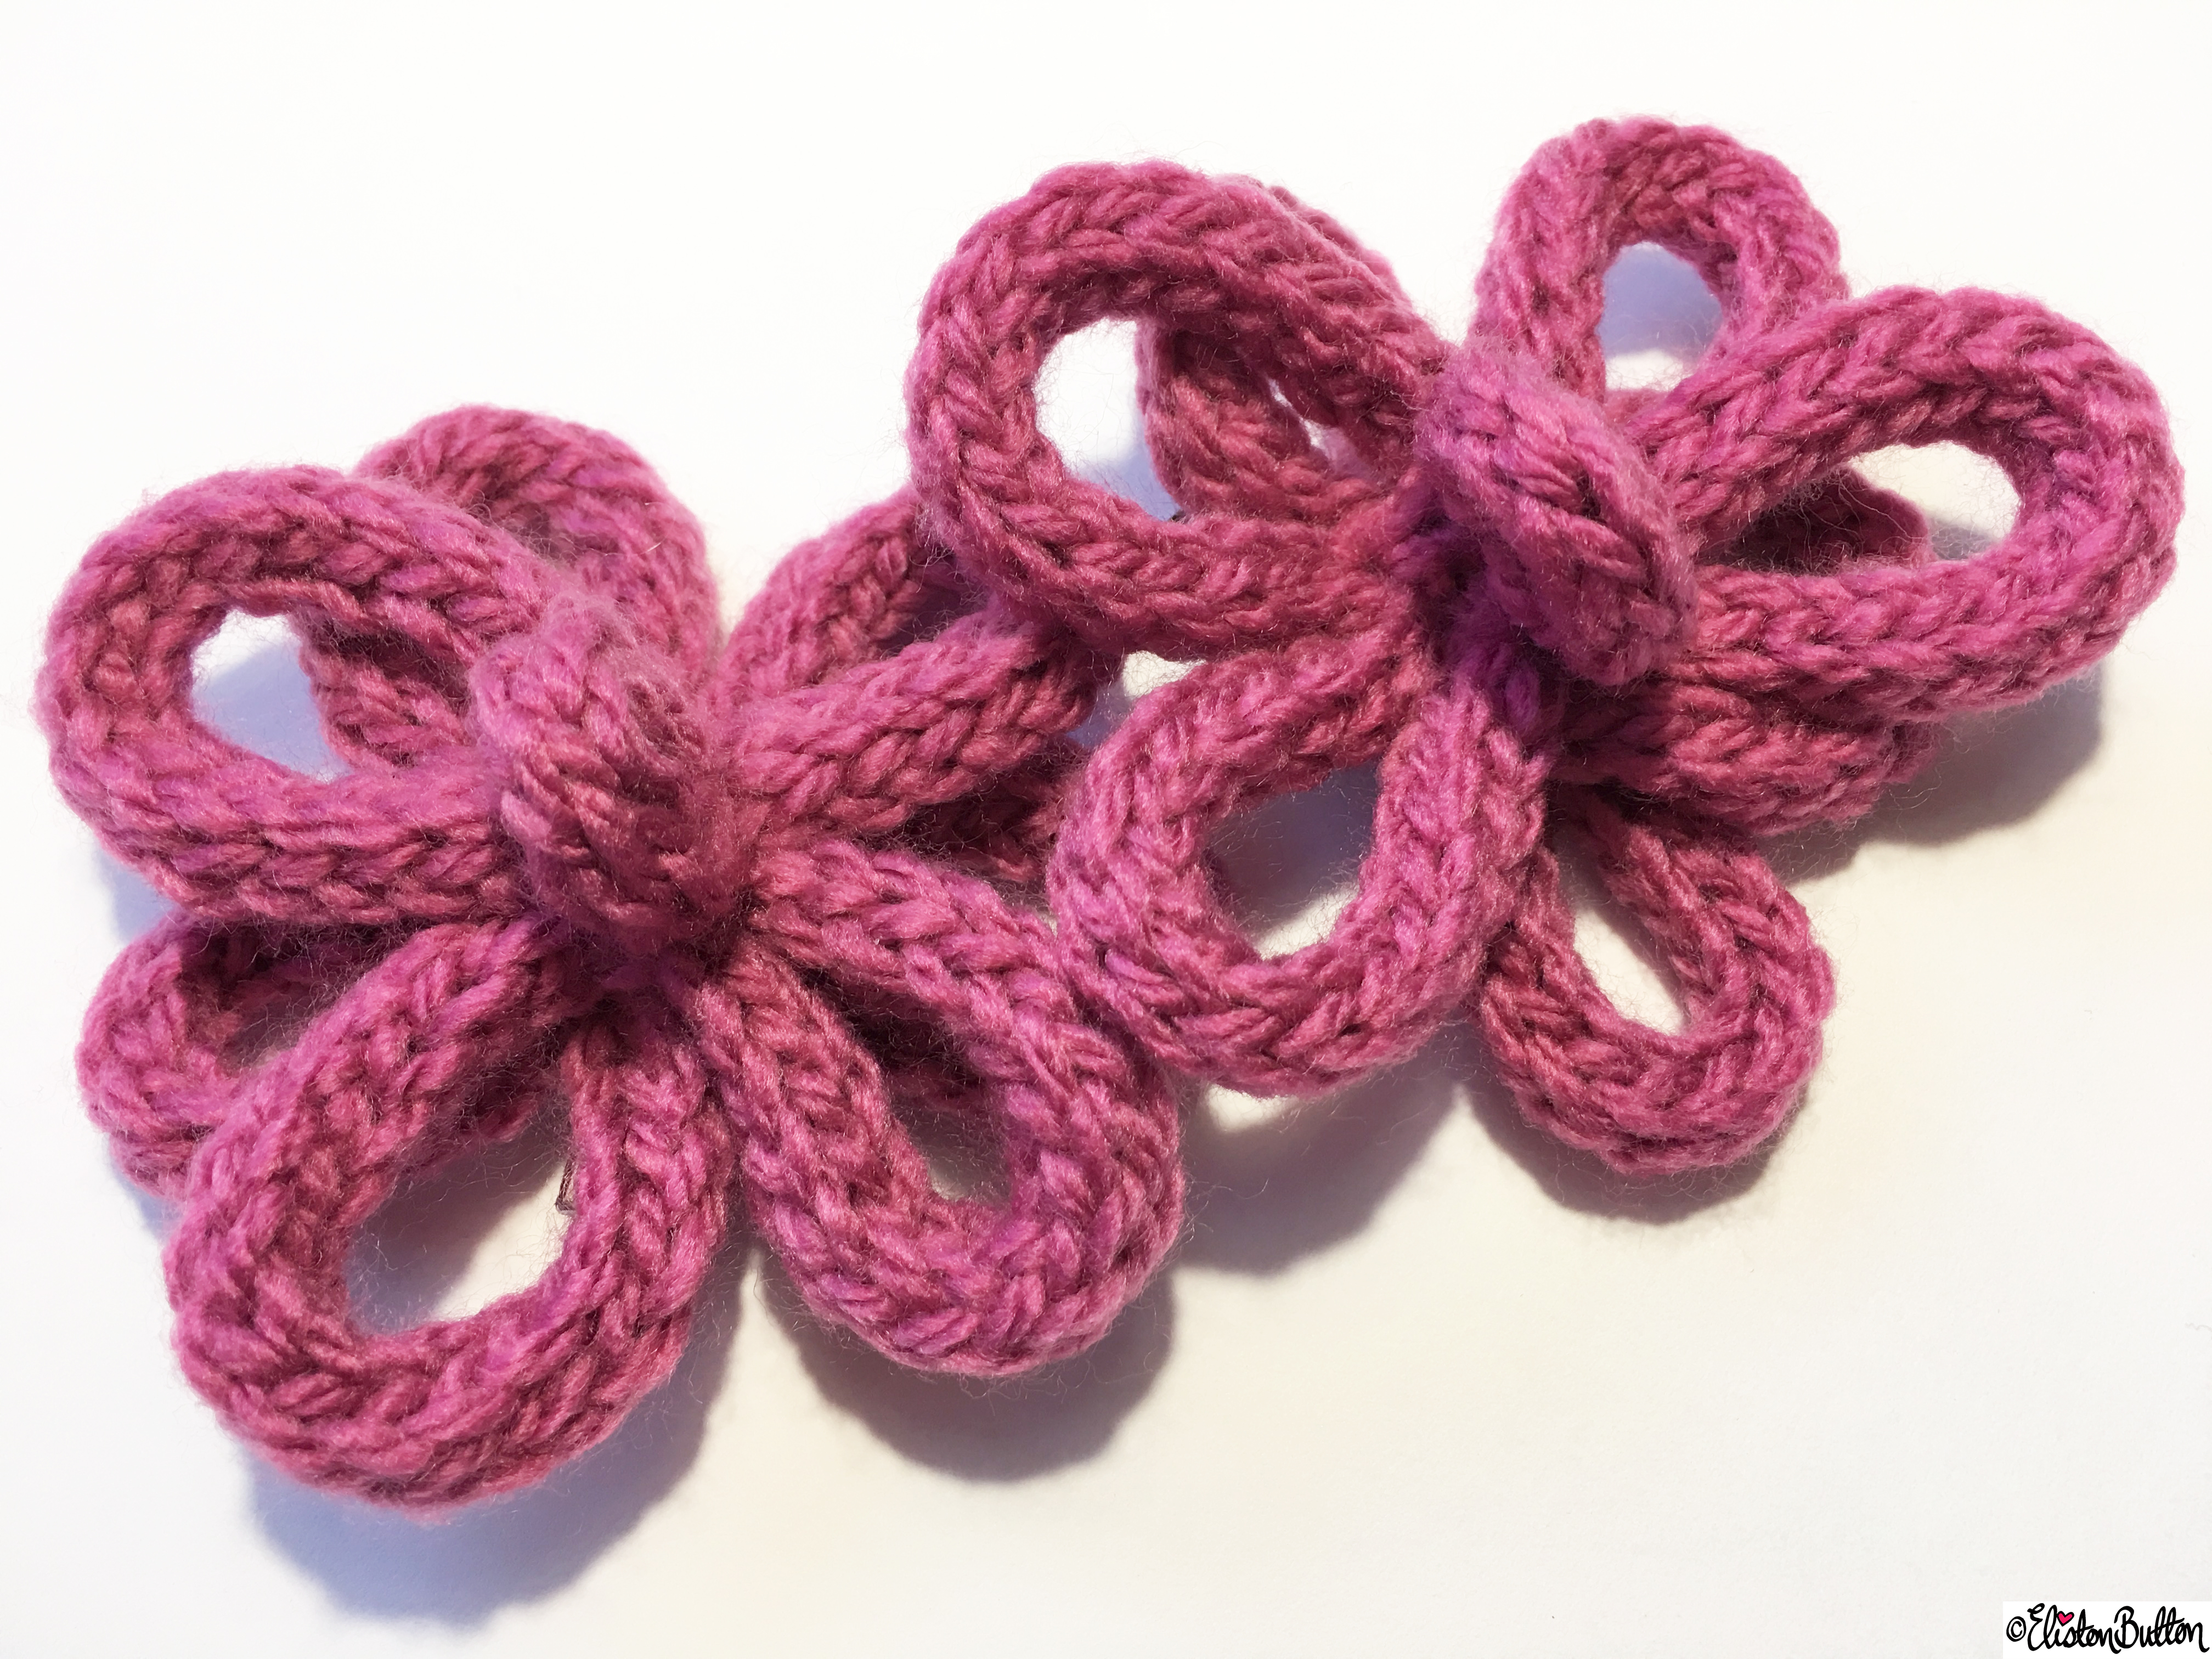 Two Handmade Rasperry Pink French Knitted Flower Hair Grips - Custom Orders and Creative Imagination at www.elistonbutton.com - Eliston Button - That Crafty Kid – Art, Design, Craft & Adventure.